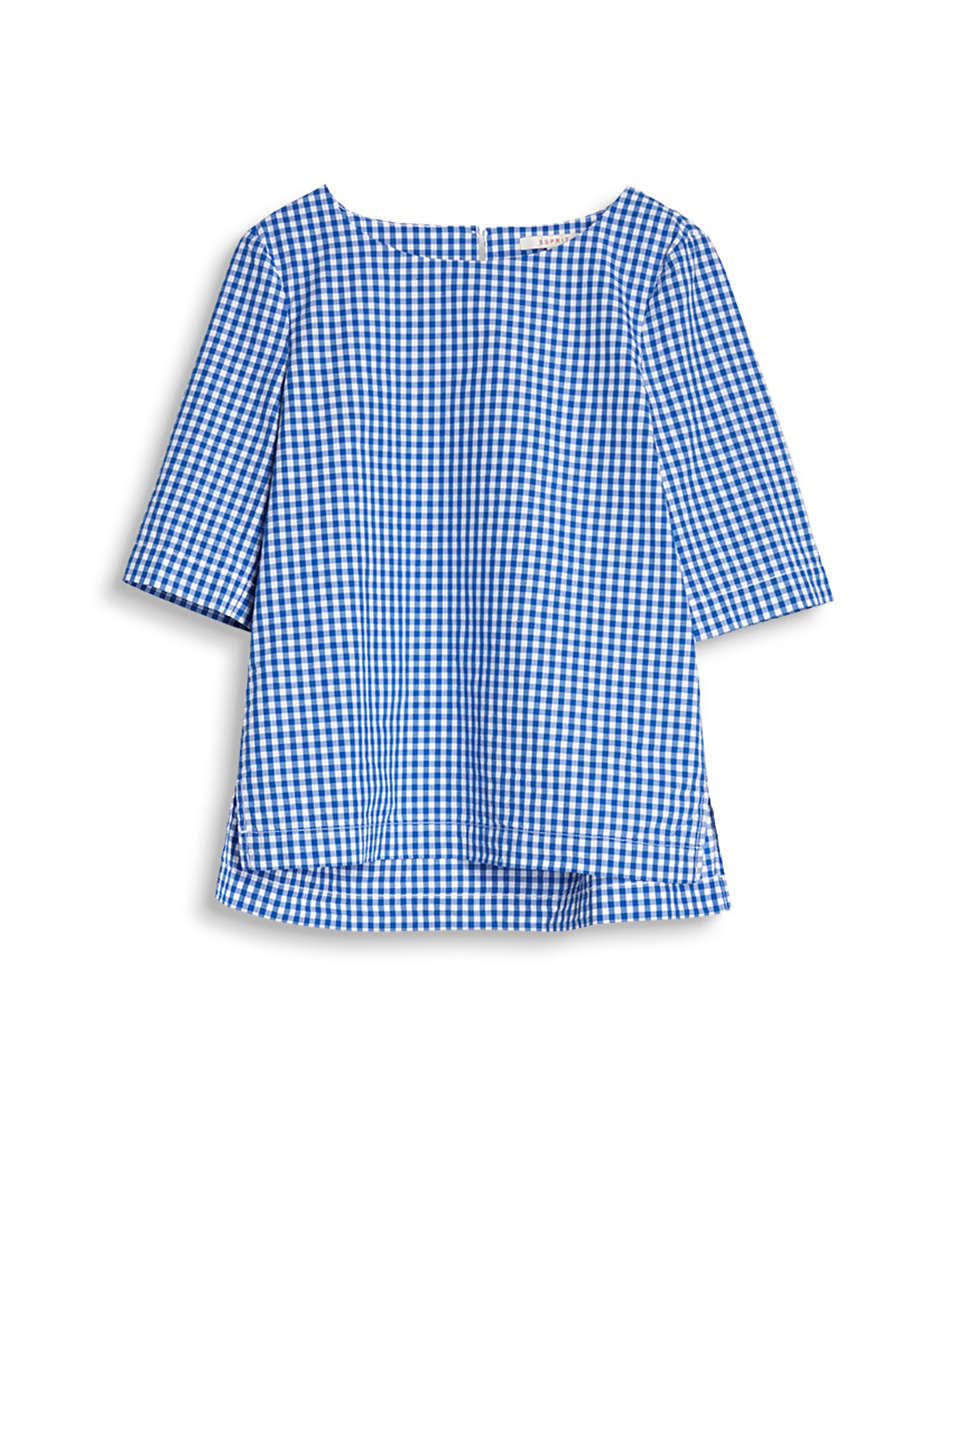 Slightly boxy cotton blouse with a trendy gingham check pattern, longer wide sleeves and a button placket on the back